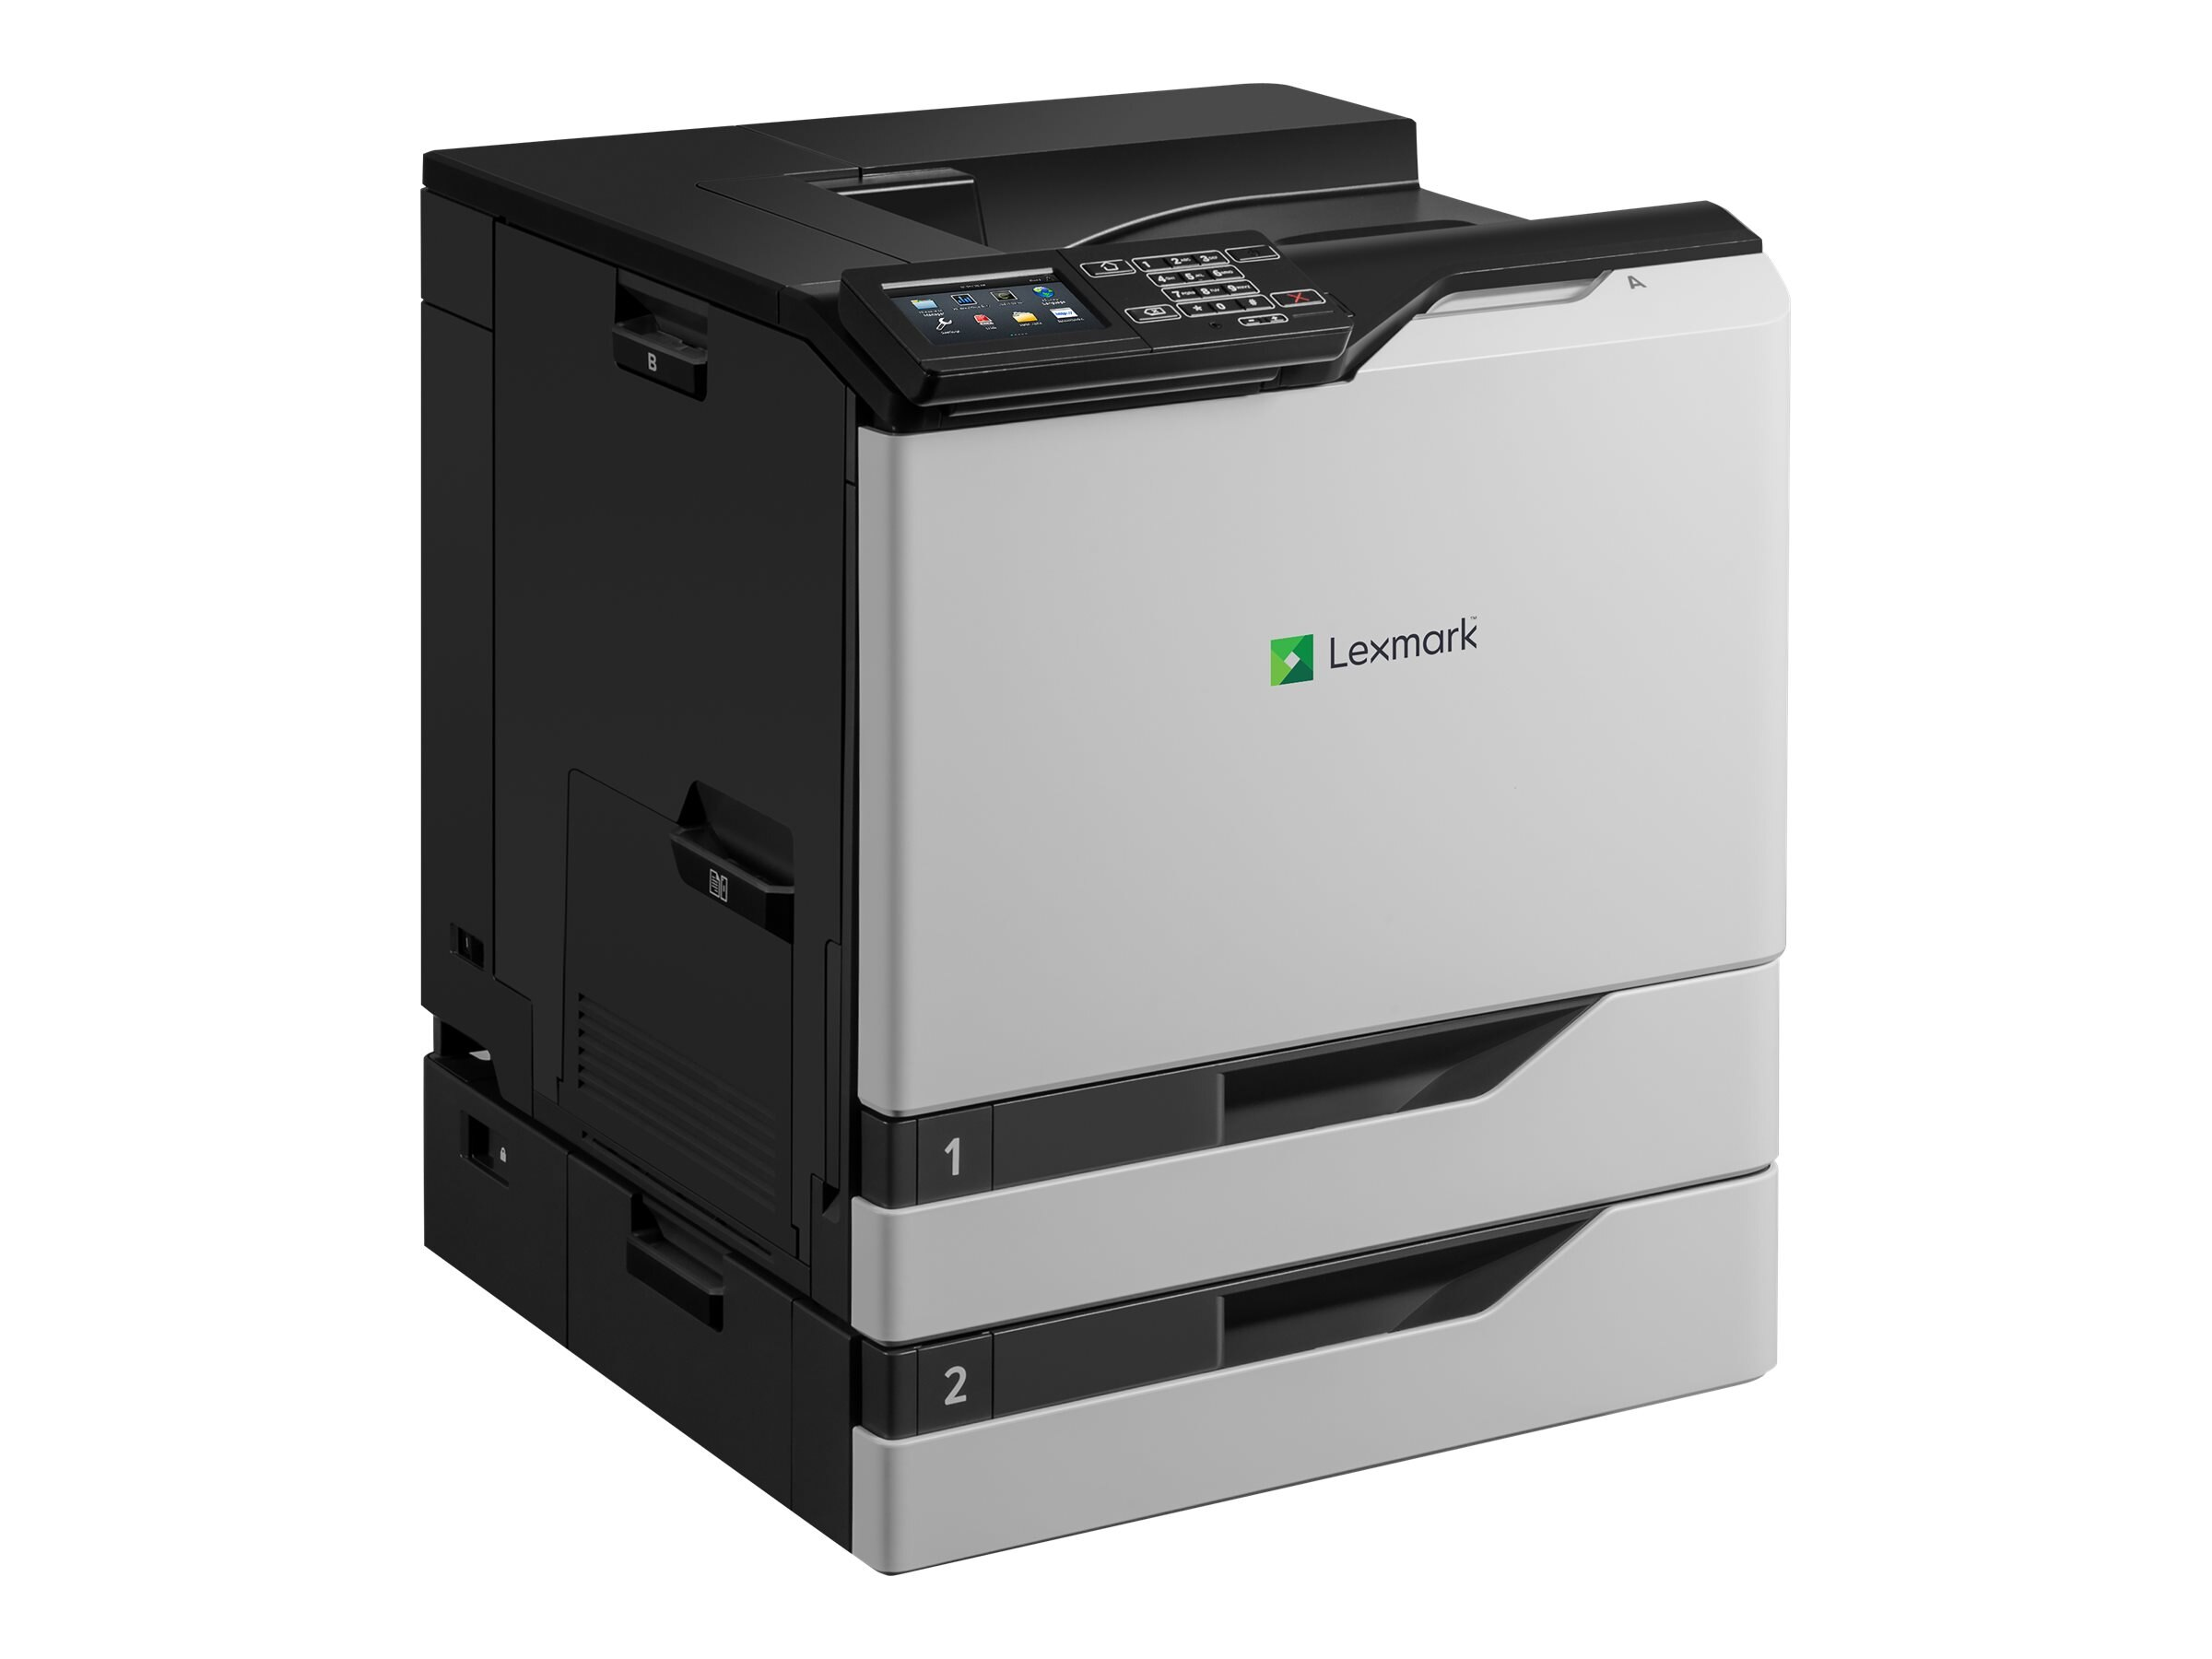 Lexmark CS820dte Color Laser Printer (TAA Compliant), 21KT004